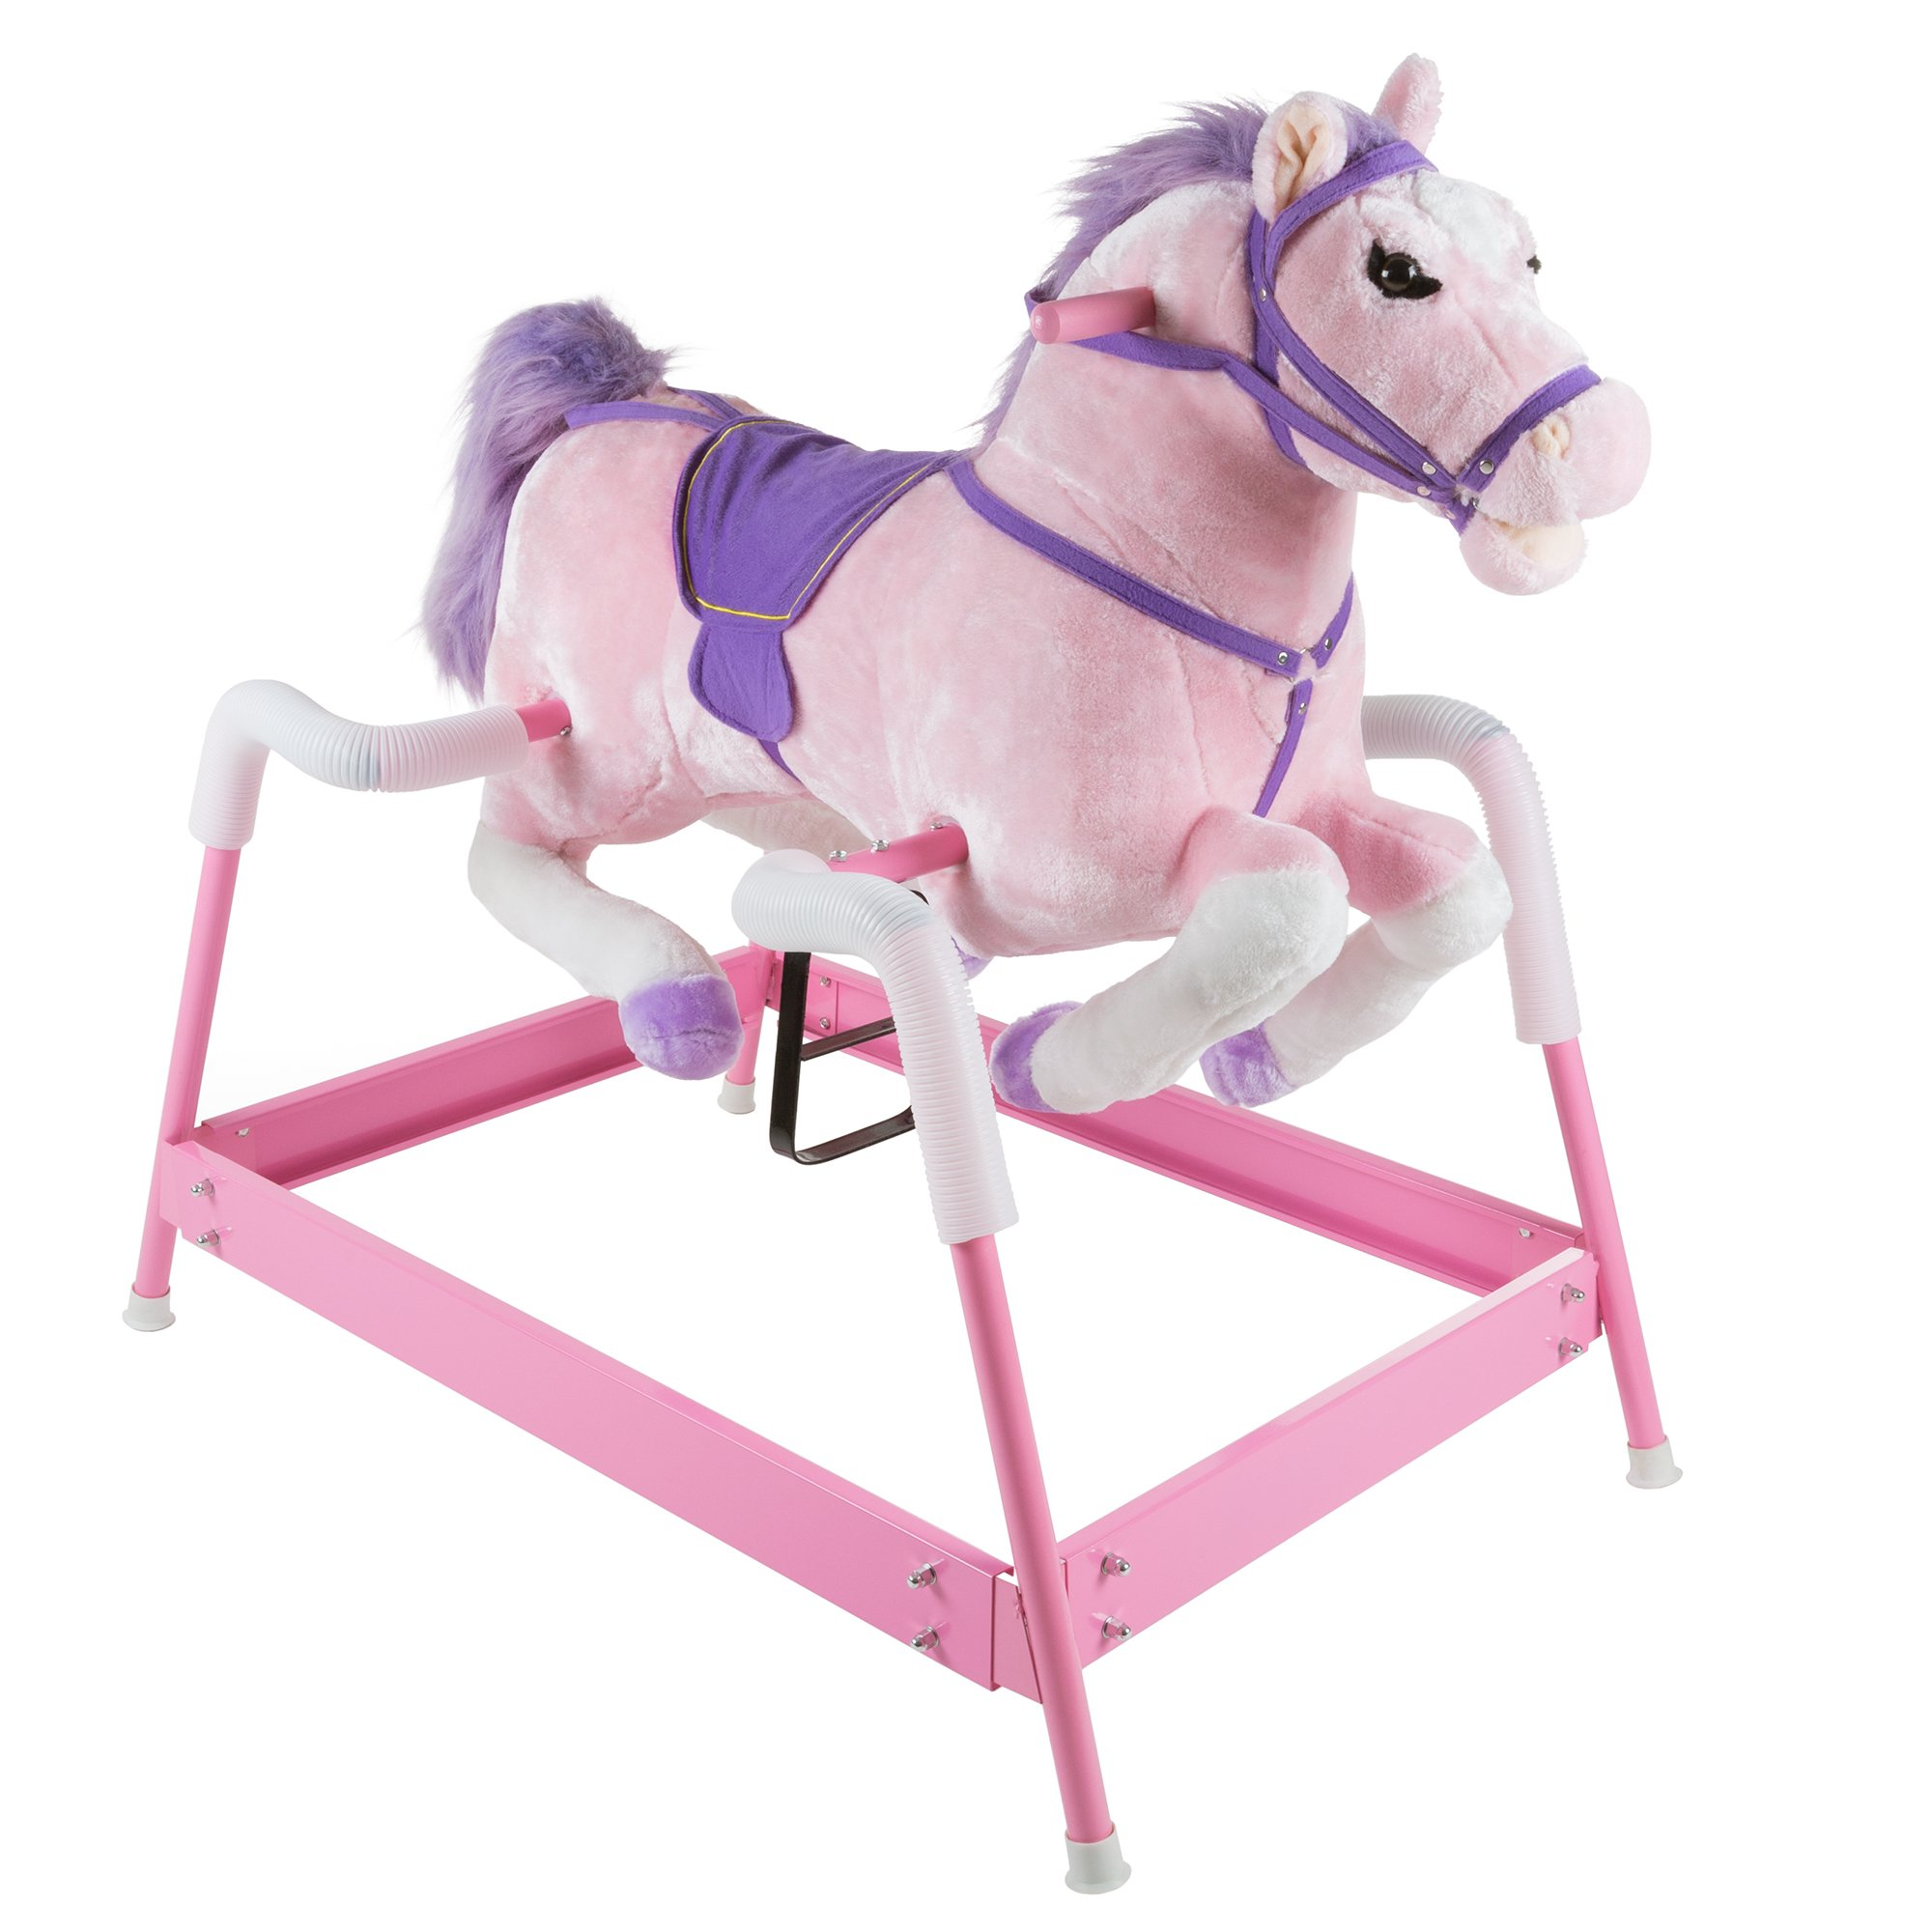 Spring Rocking Horse Plush Ride on Toy with Adjustable Foot Stirrups and Sounds for Toddlers to 5 Years Old by Happy Trails - Pink